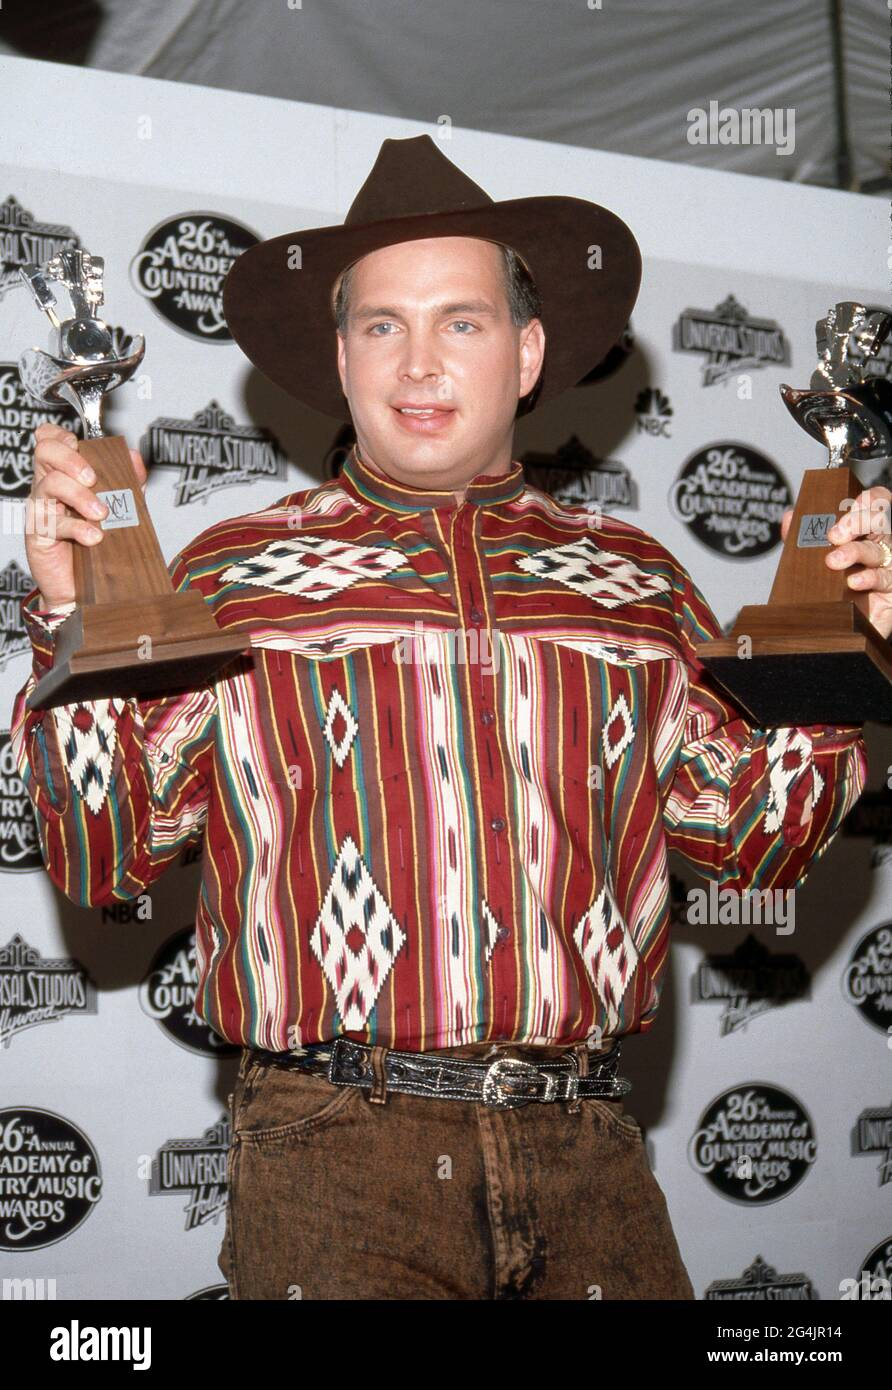 Garth Brooks at the 26th Annual Academy of Country Music Awards at Universal Ampitheater in Universal City, California April 24, 1991 Credit: Ralph Dominguez/MediaPunch Stock Photo